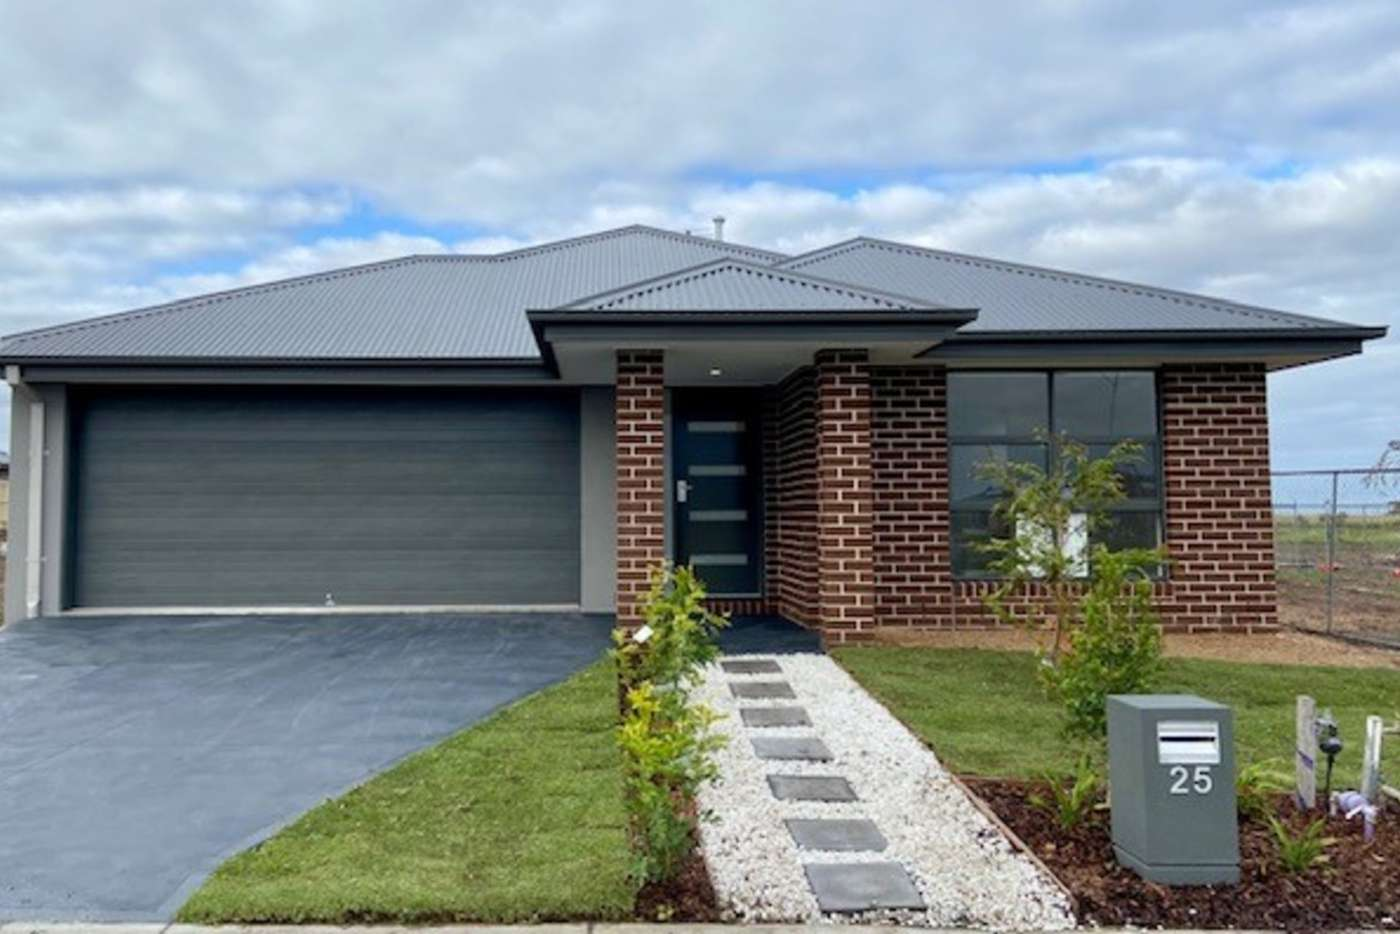 Main view of Homely house listing, 25 Pear Street, Wyndham Vale VIC 3024